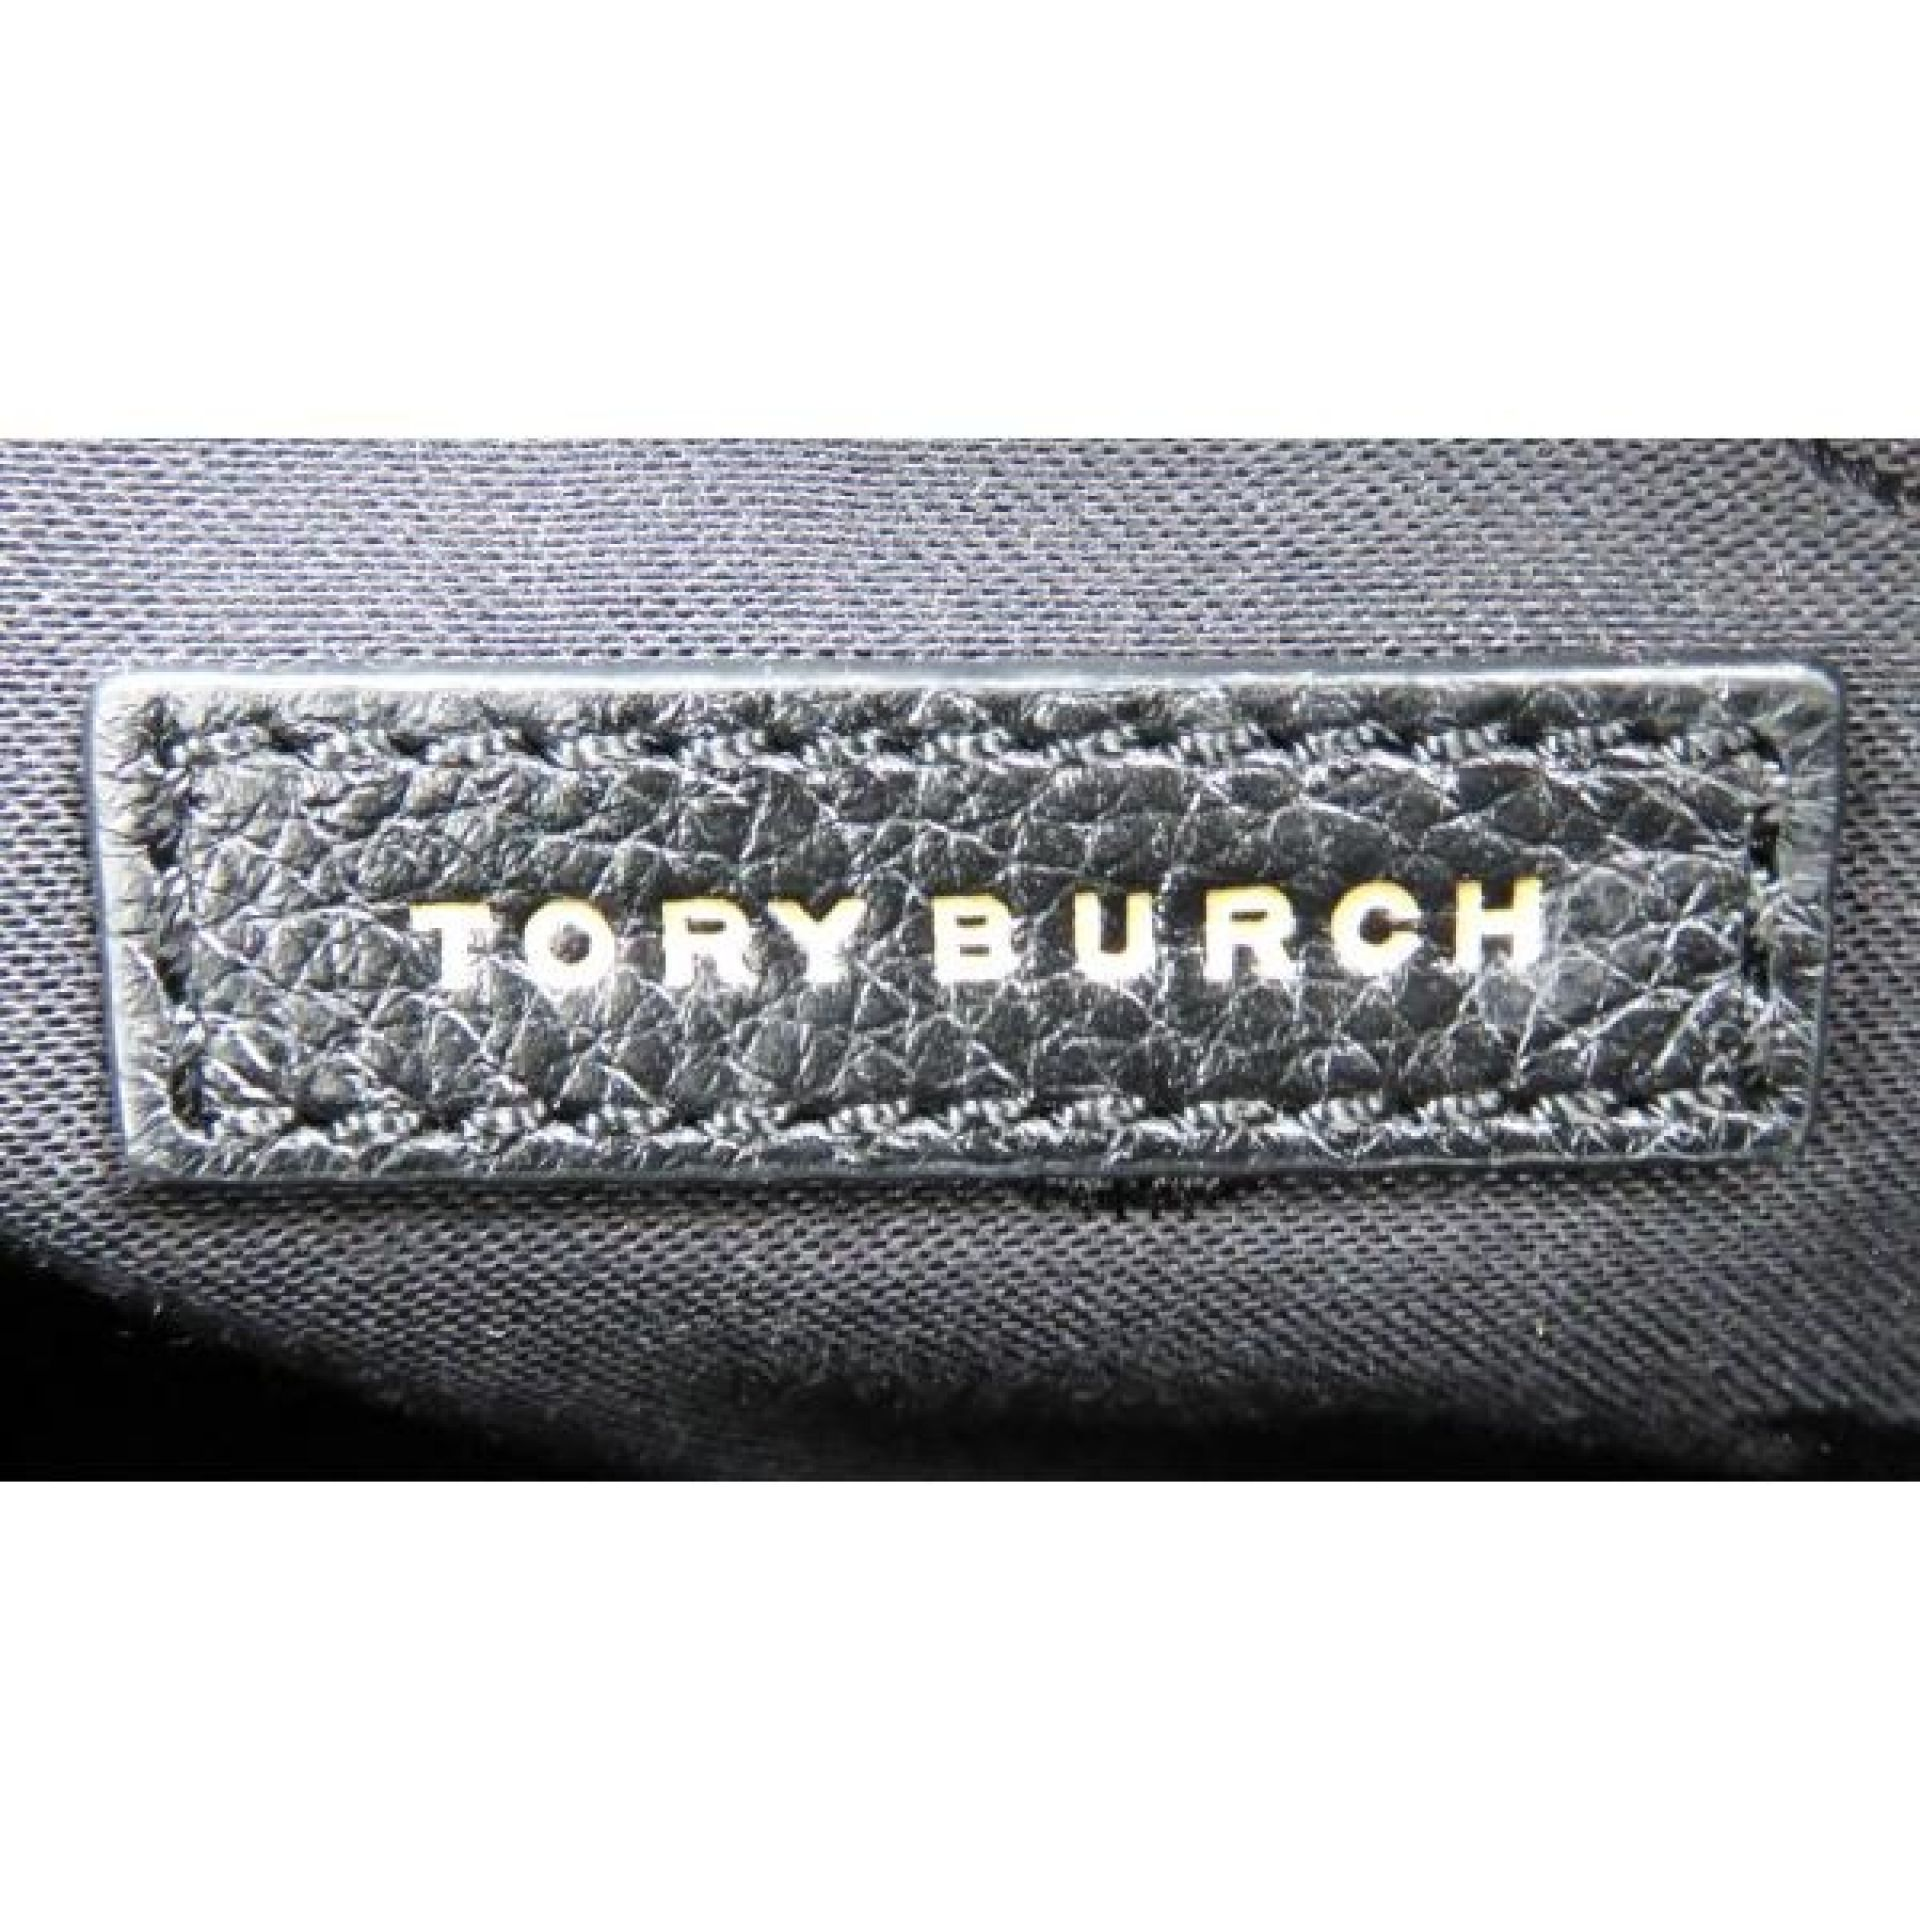 Tory Burch Black Pebbled Leather Frances Satchel Bag